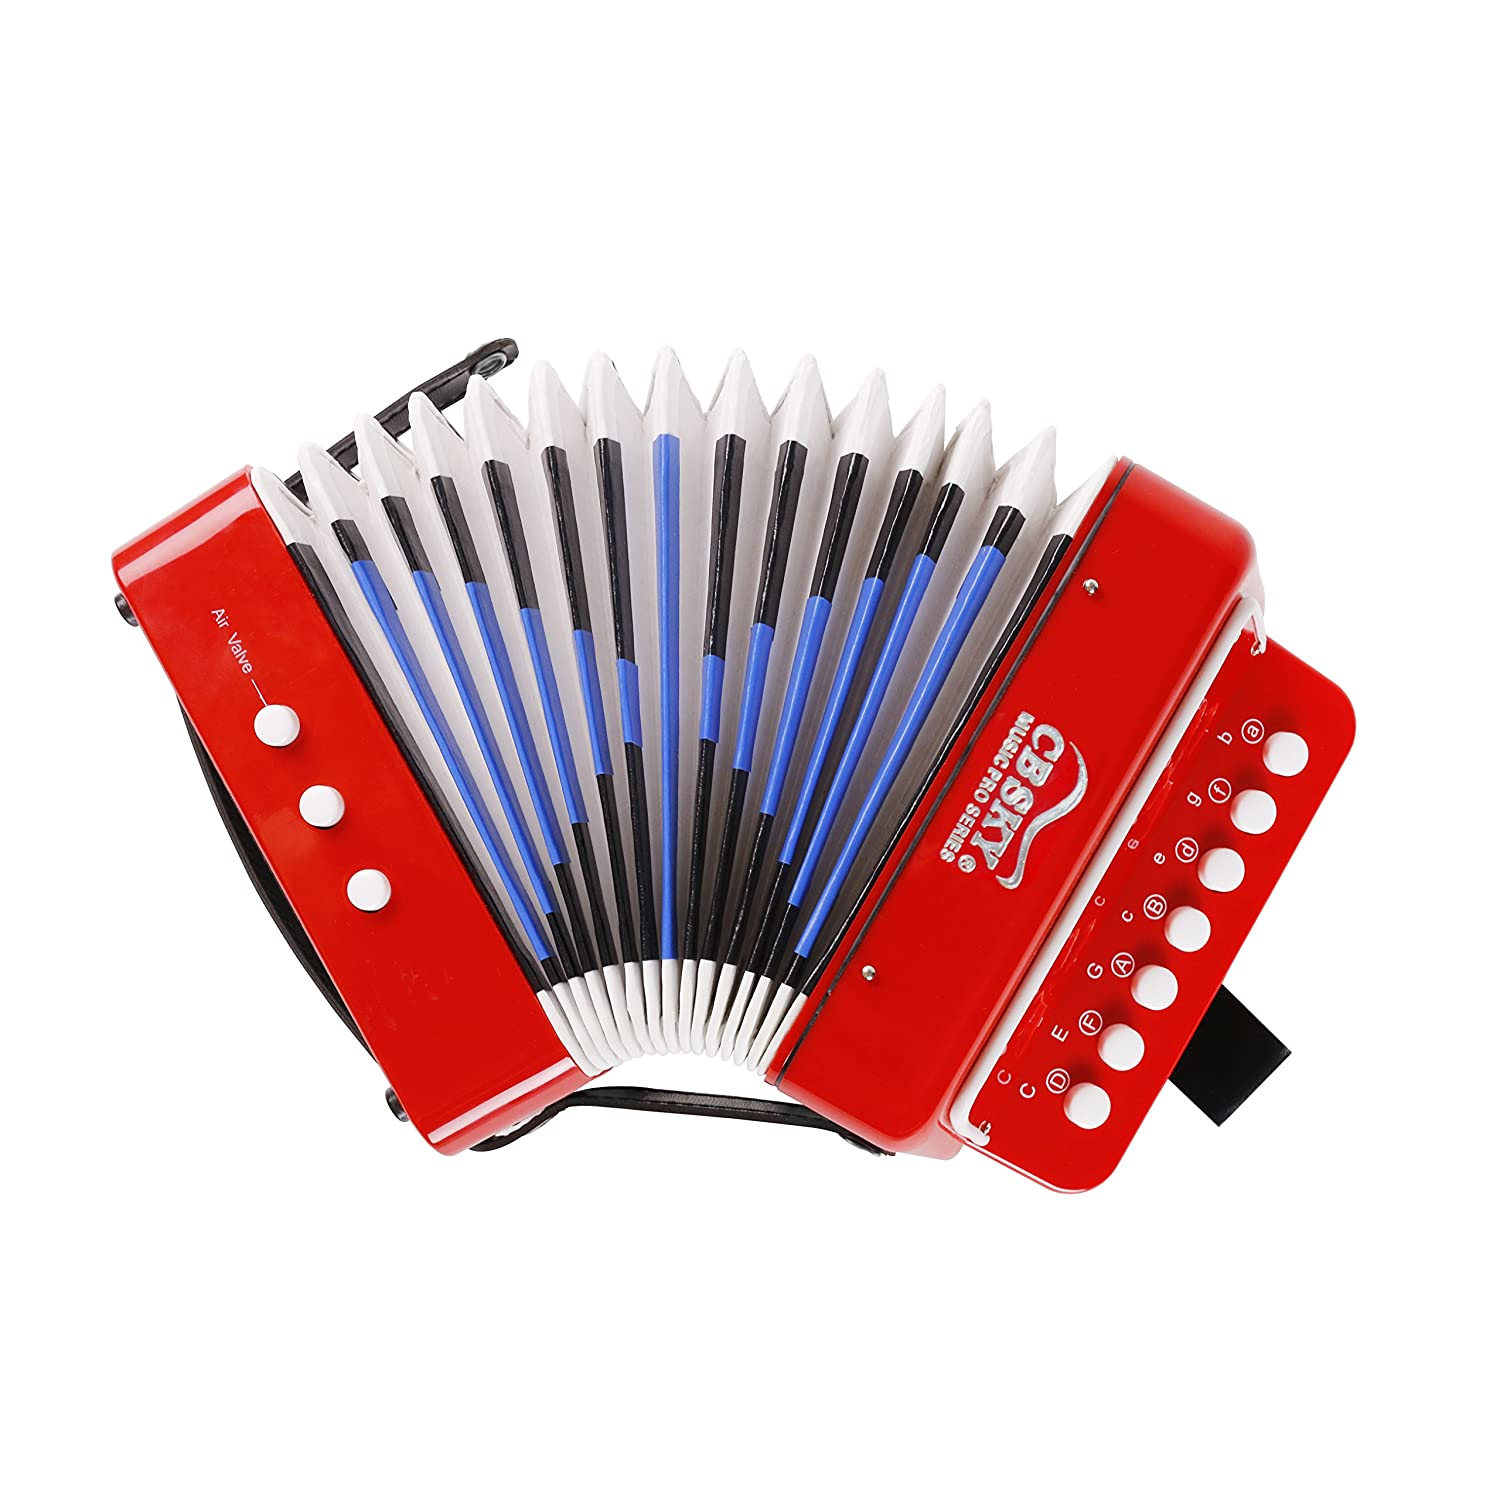 CB SKY 7 KEYS KIDS ACCORDION MUSICAL TOYS/ KIDS MUSICAL INSTRUMENT (R2) MA104R